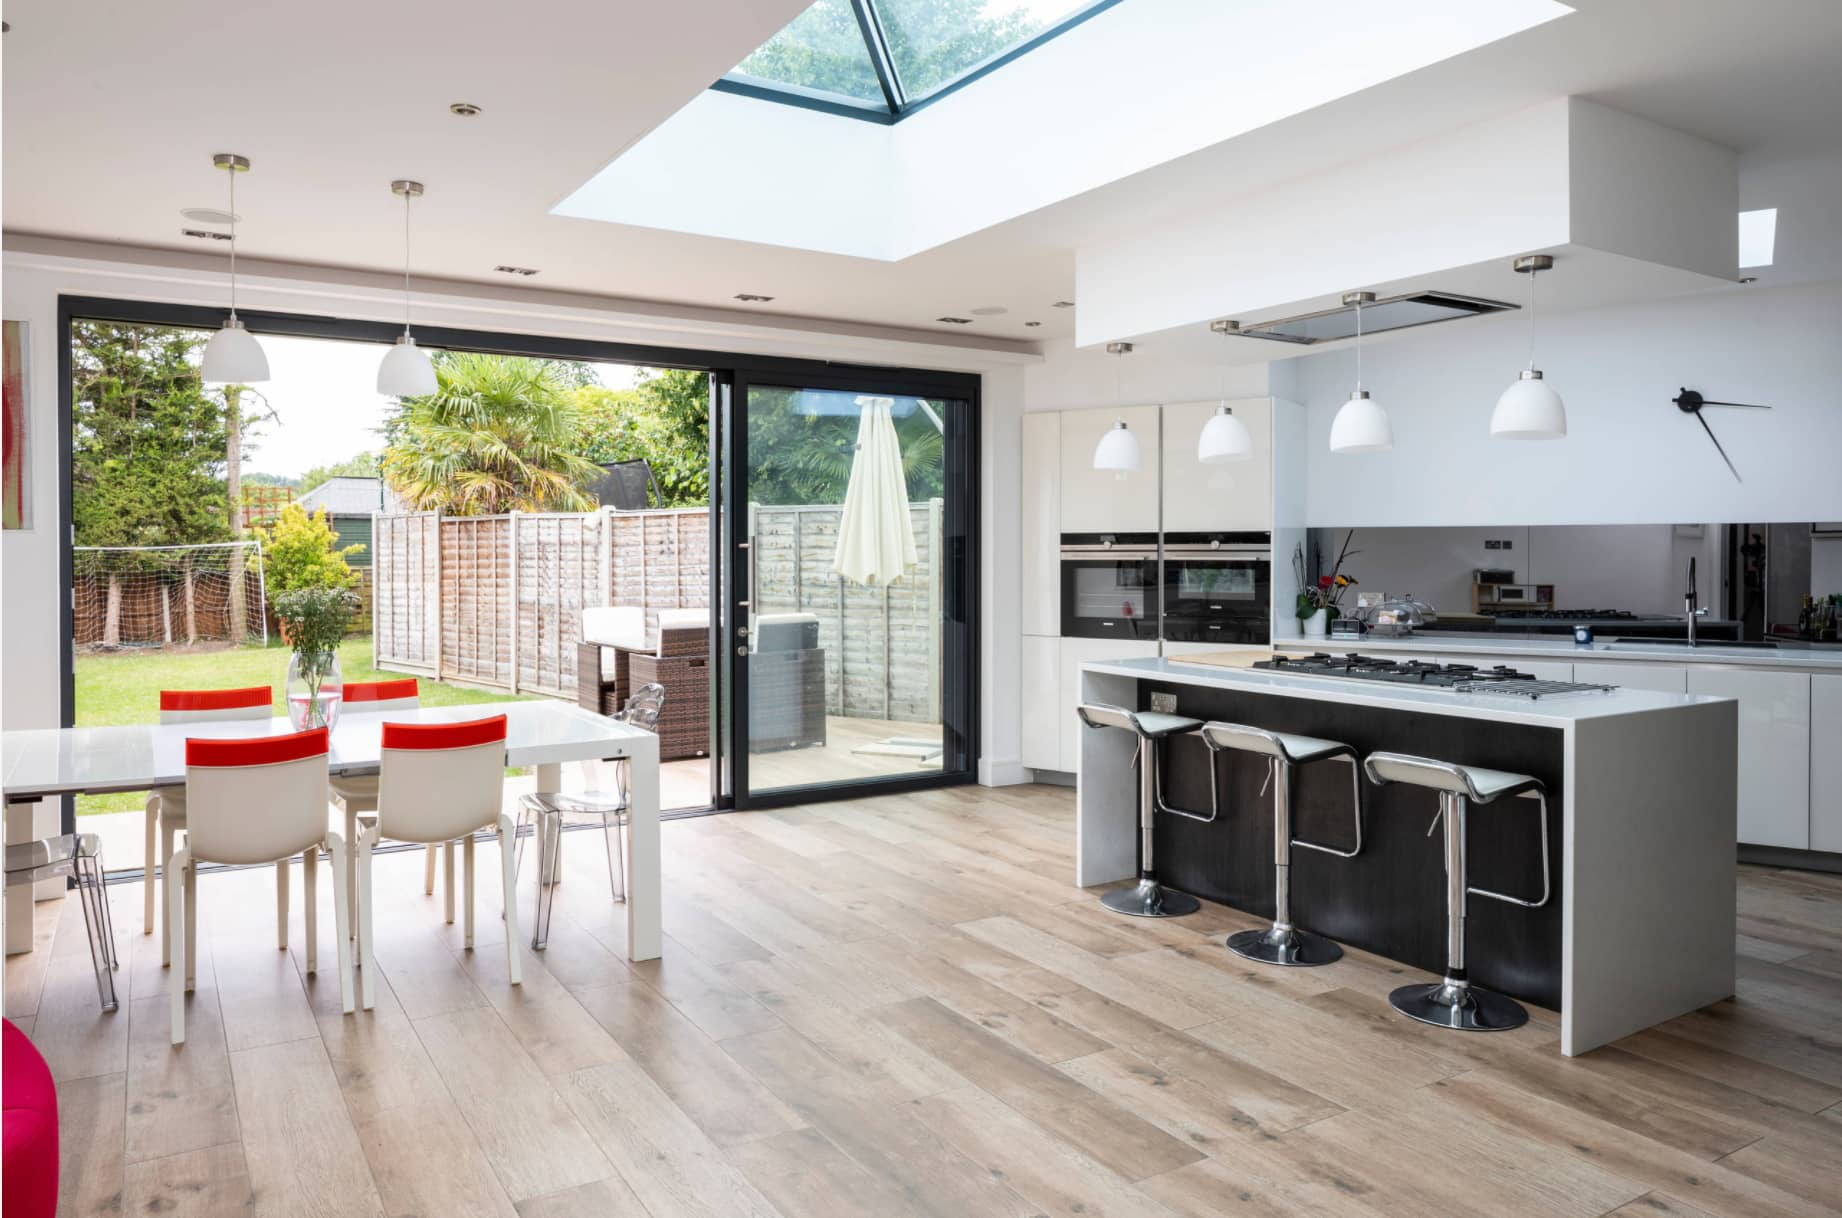 What do I need to know about high quality kitchen extensions in Reigate? Six top tips